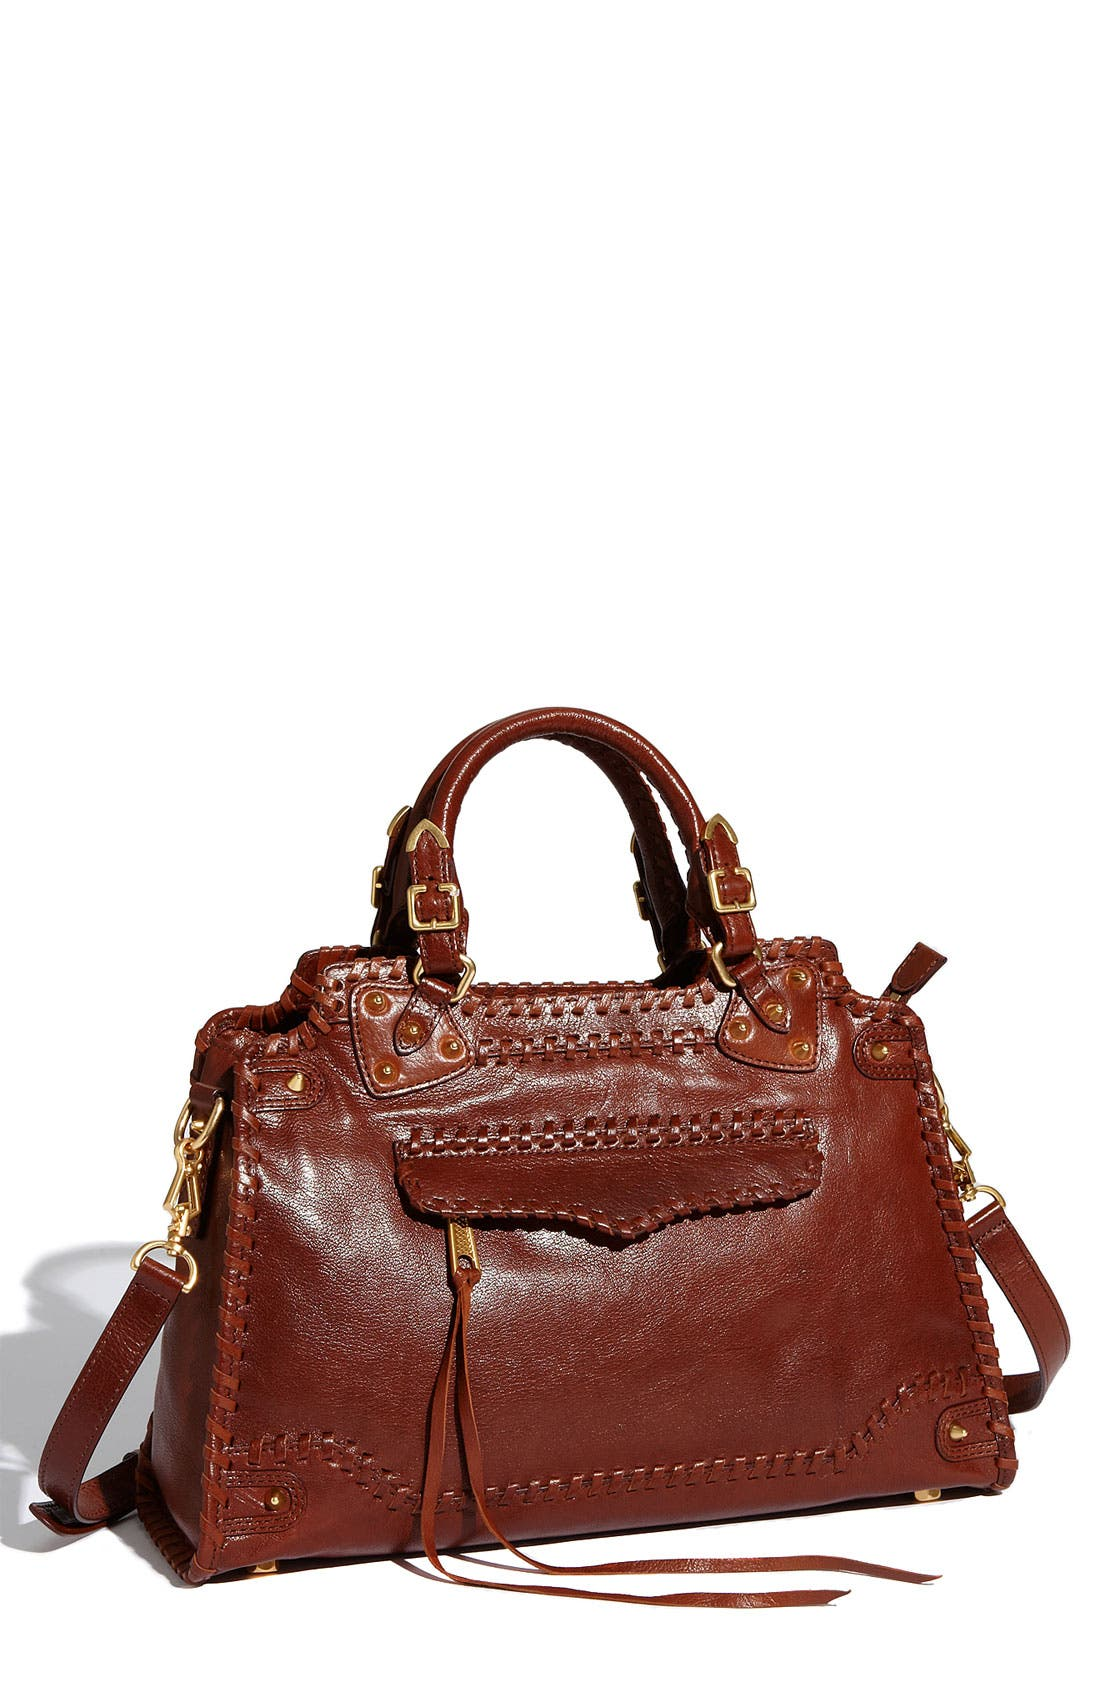 Alternate Image 1 Selected - Rebecca Minkoff 'Desire' Whipstitch Satchel